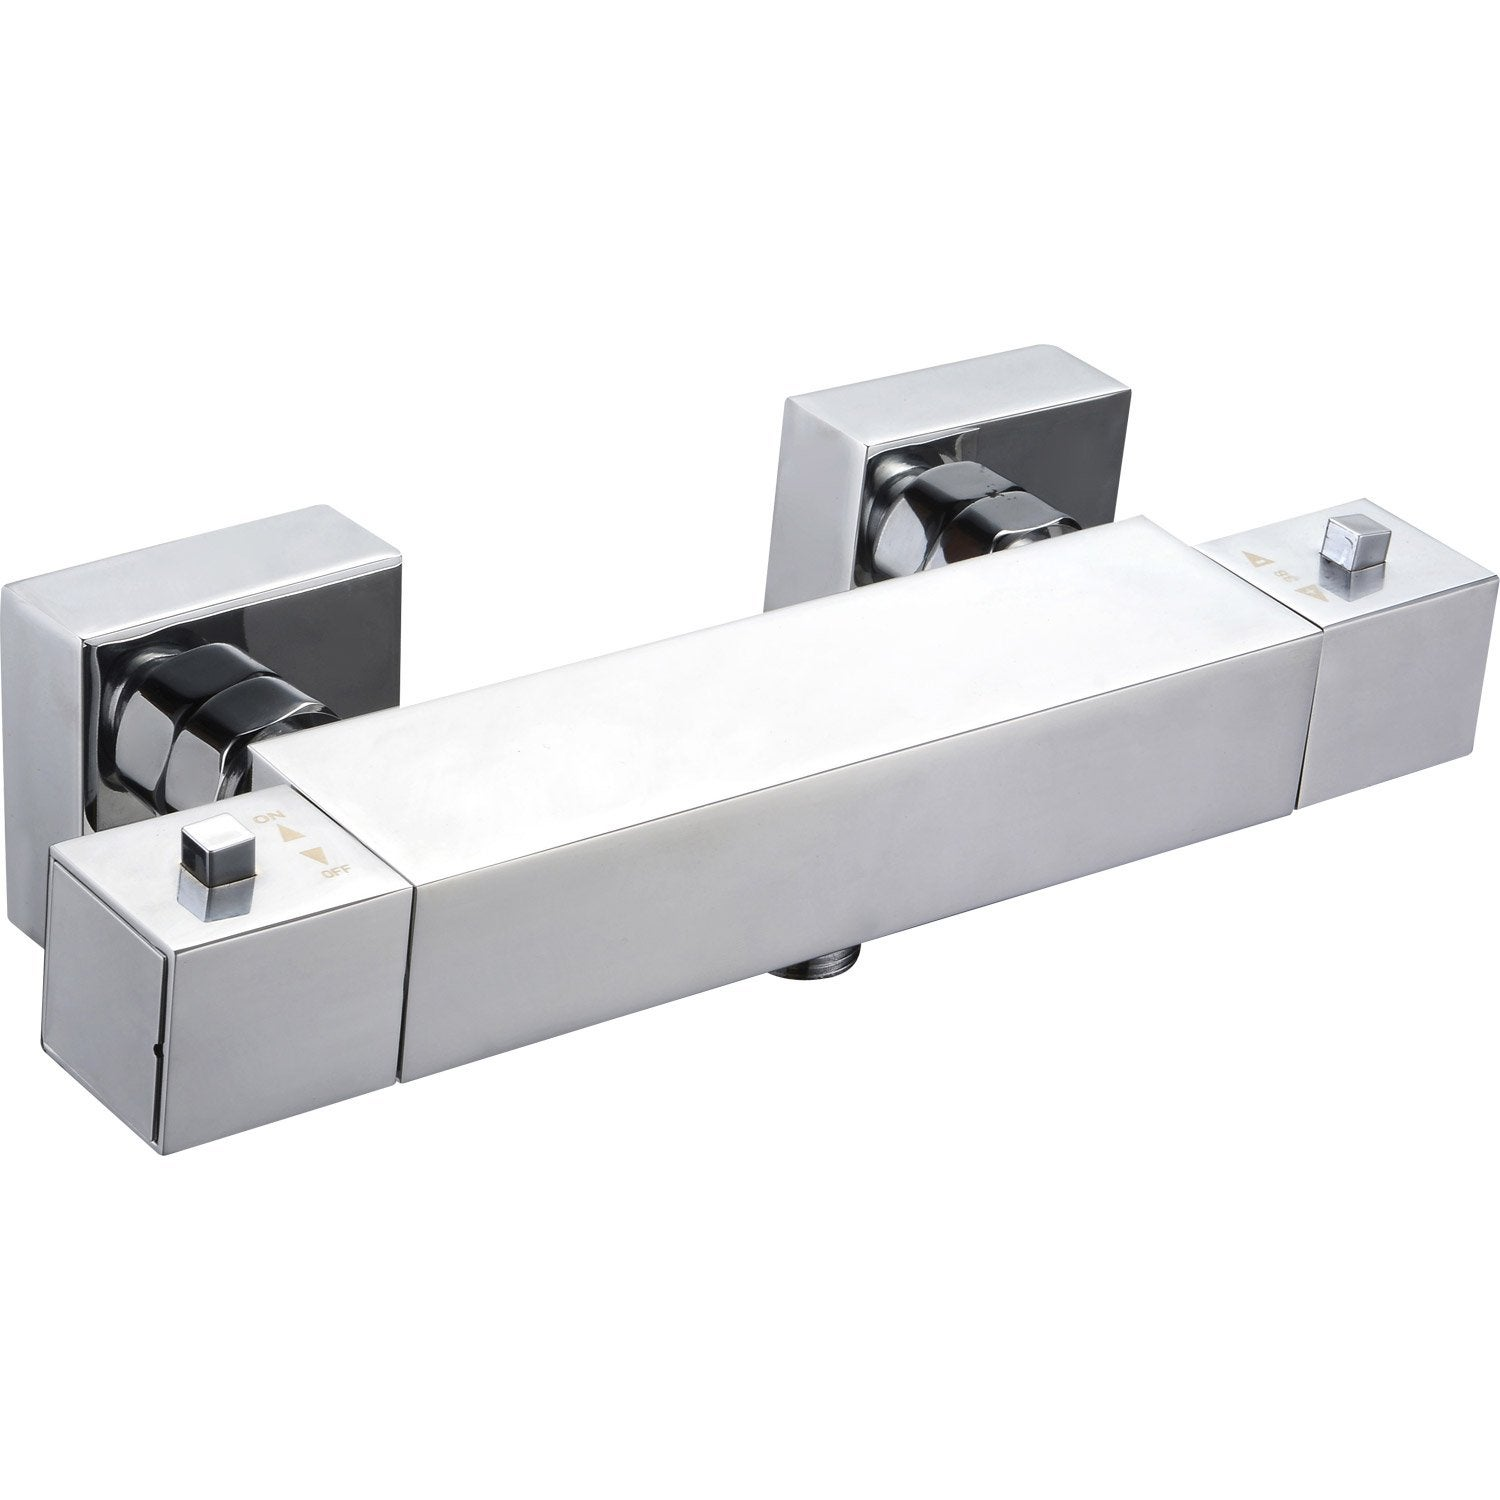 Mitigeur thermostatique de douche chrom sensea luka for Pulidoras de suelos leroy merlin